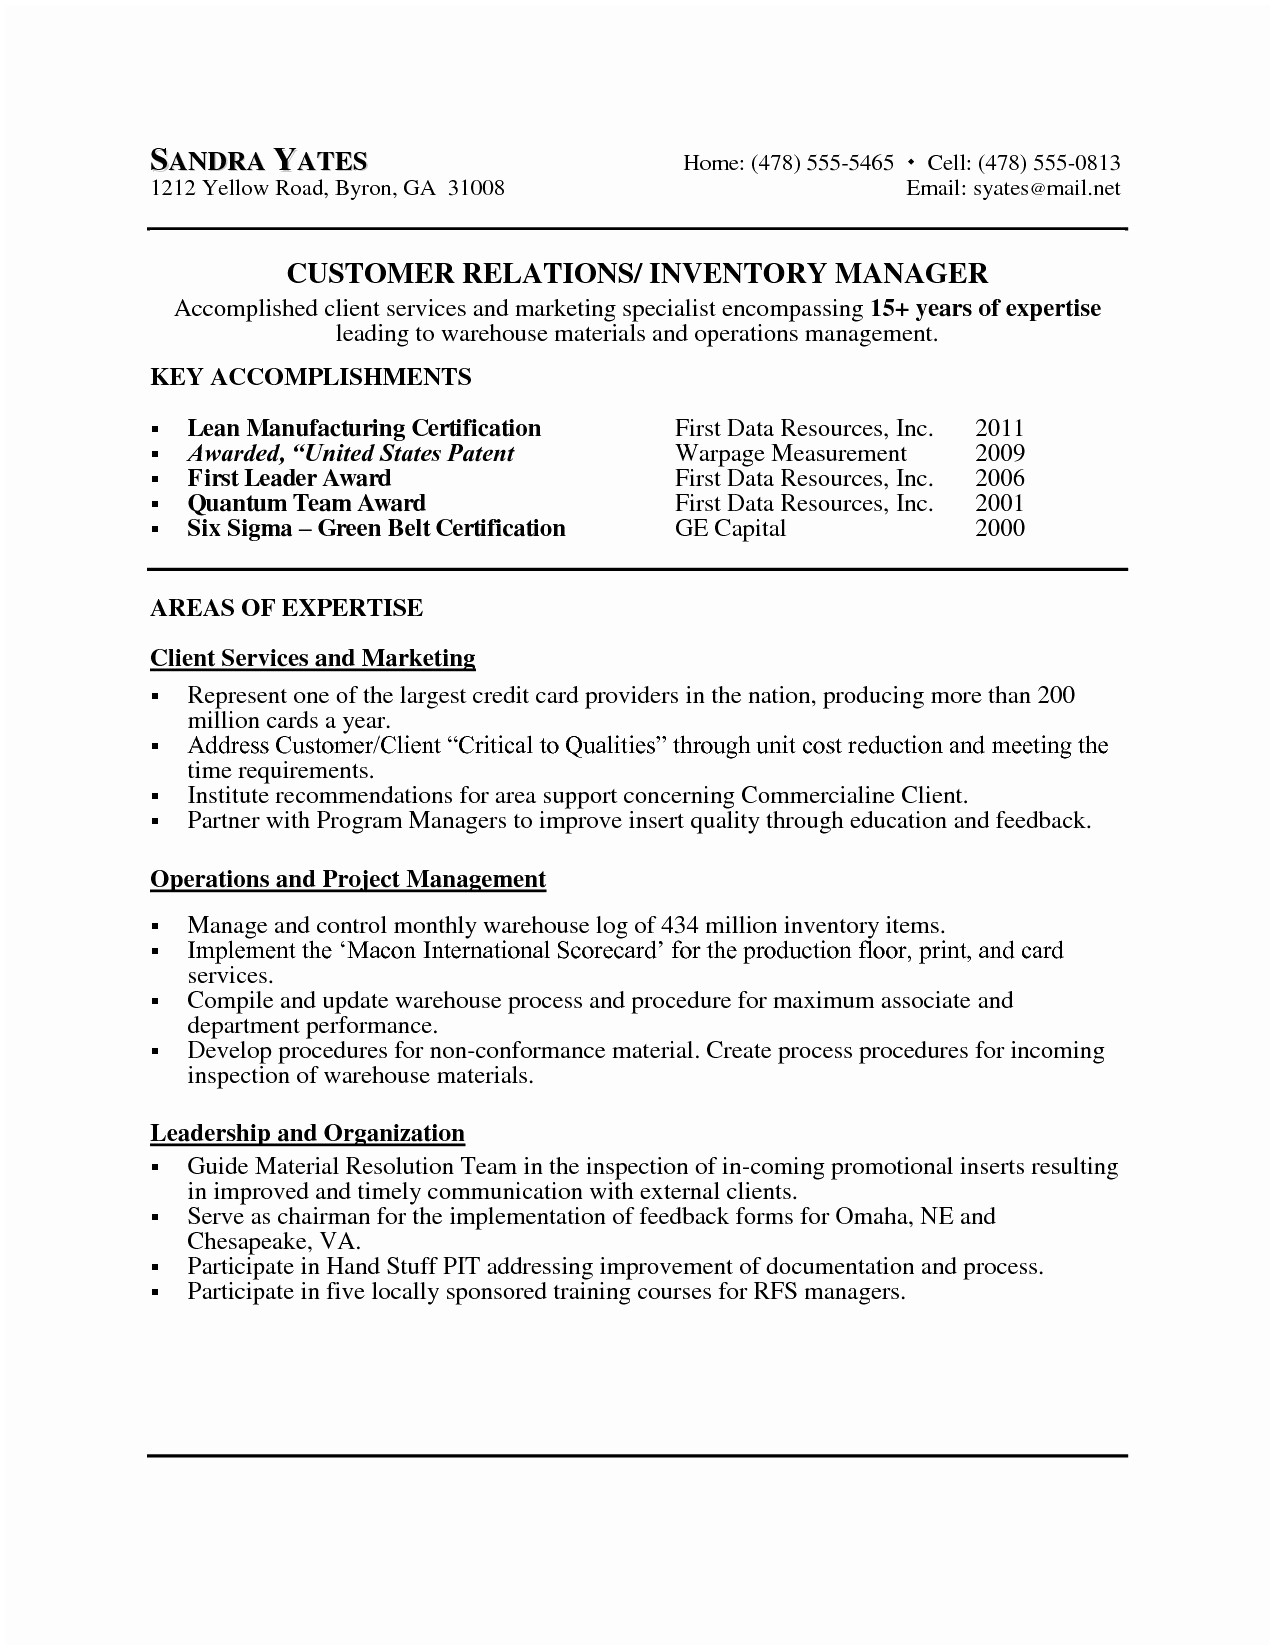 Operations Manager Cover Letter Template - Project Manager Cover Letter Project Manager Cover Letter Sample New